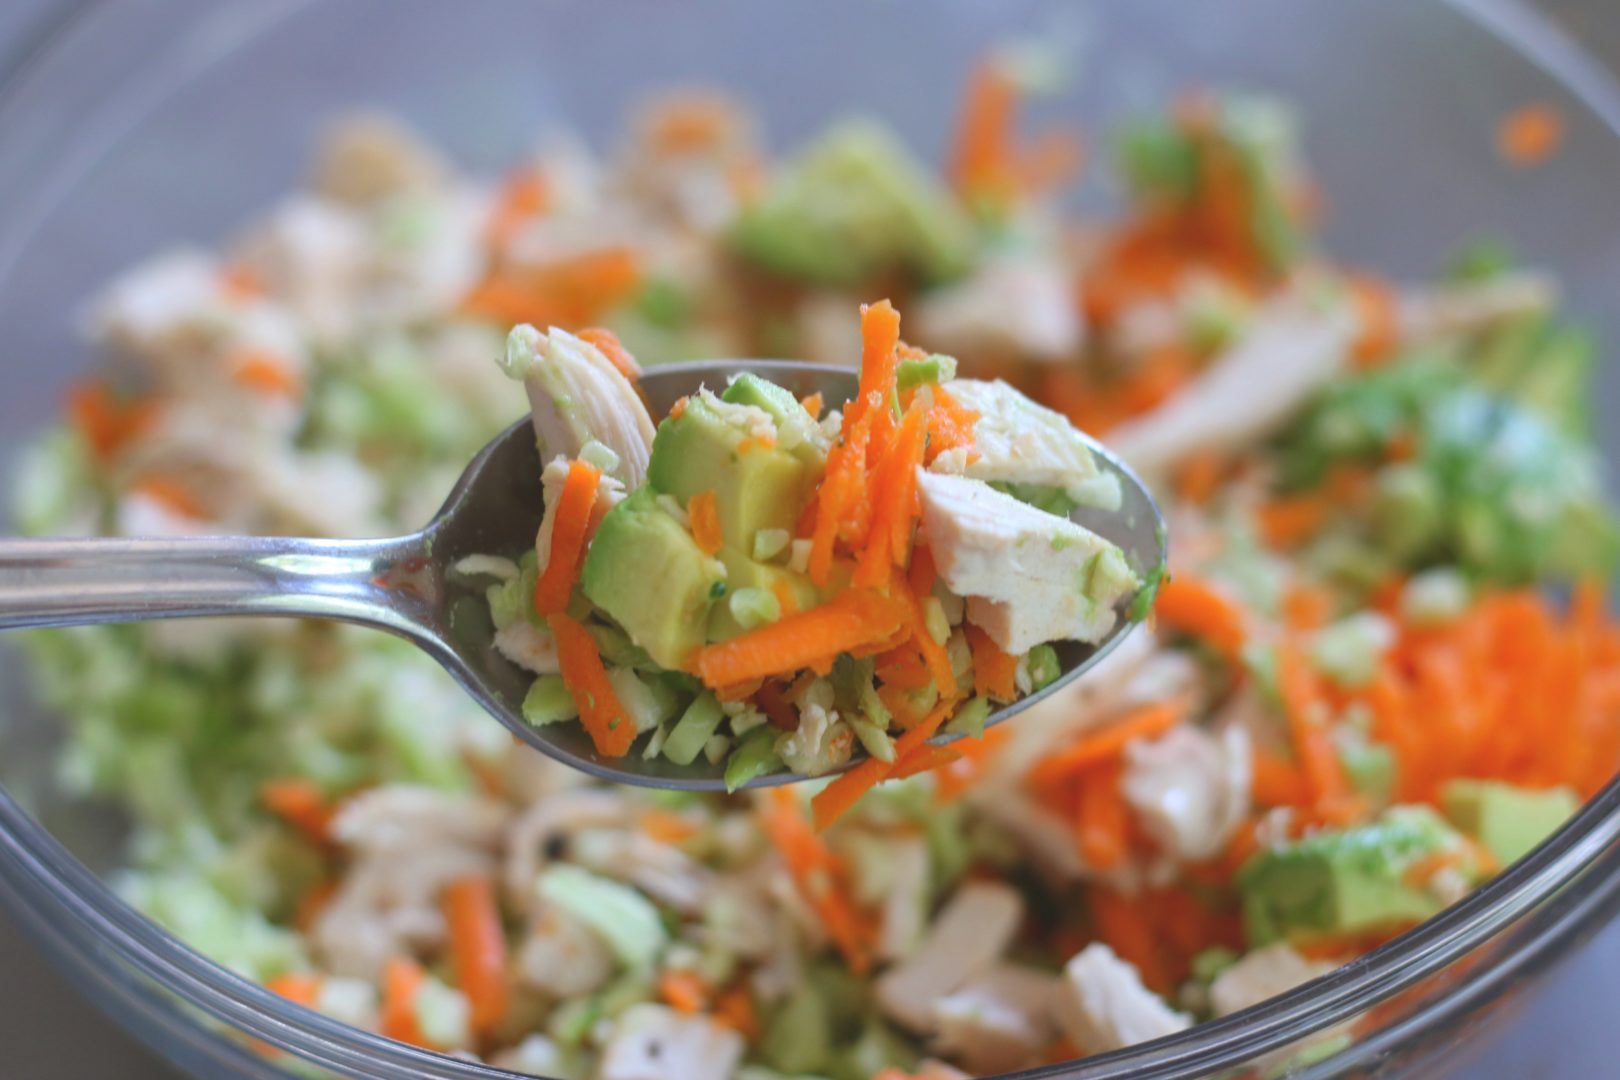 Carrot Ginger Chopped Chicken Salad 2 - GrabSomeJoy.com